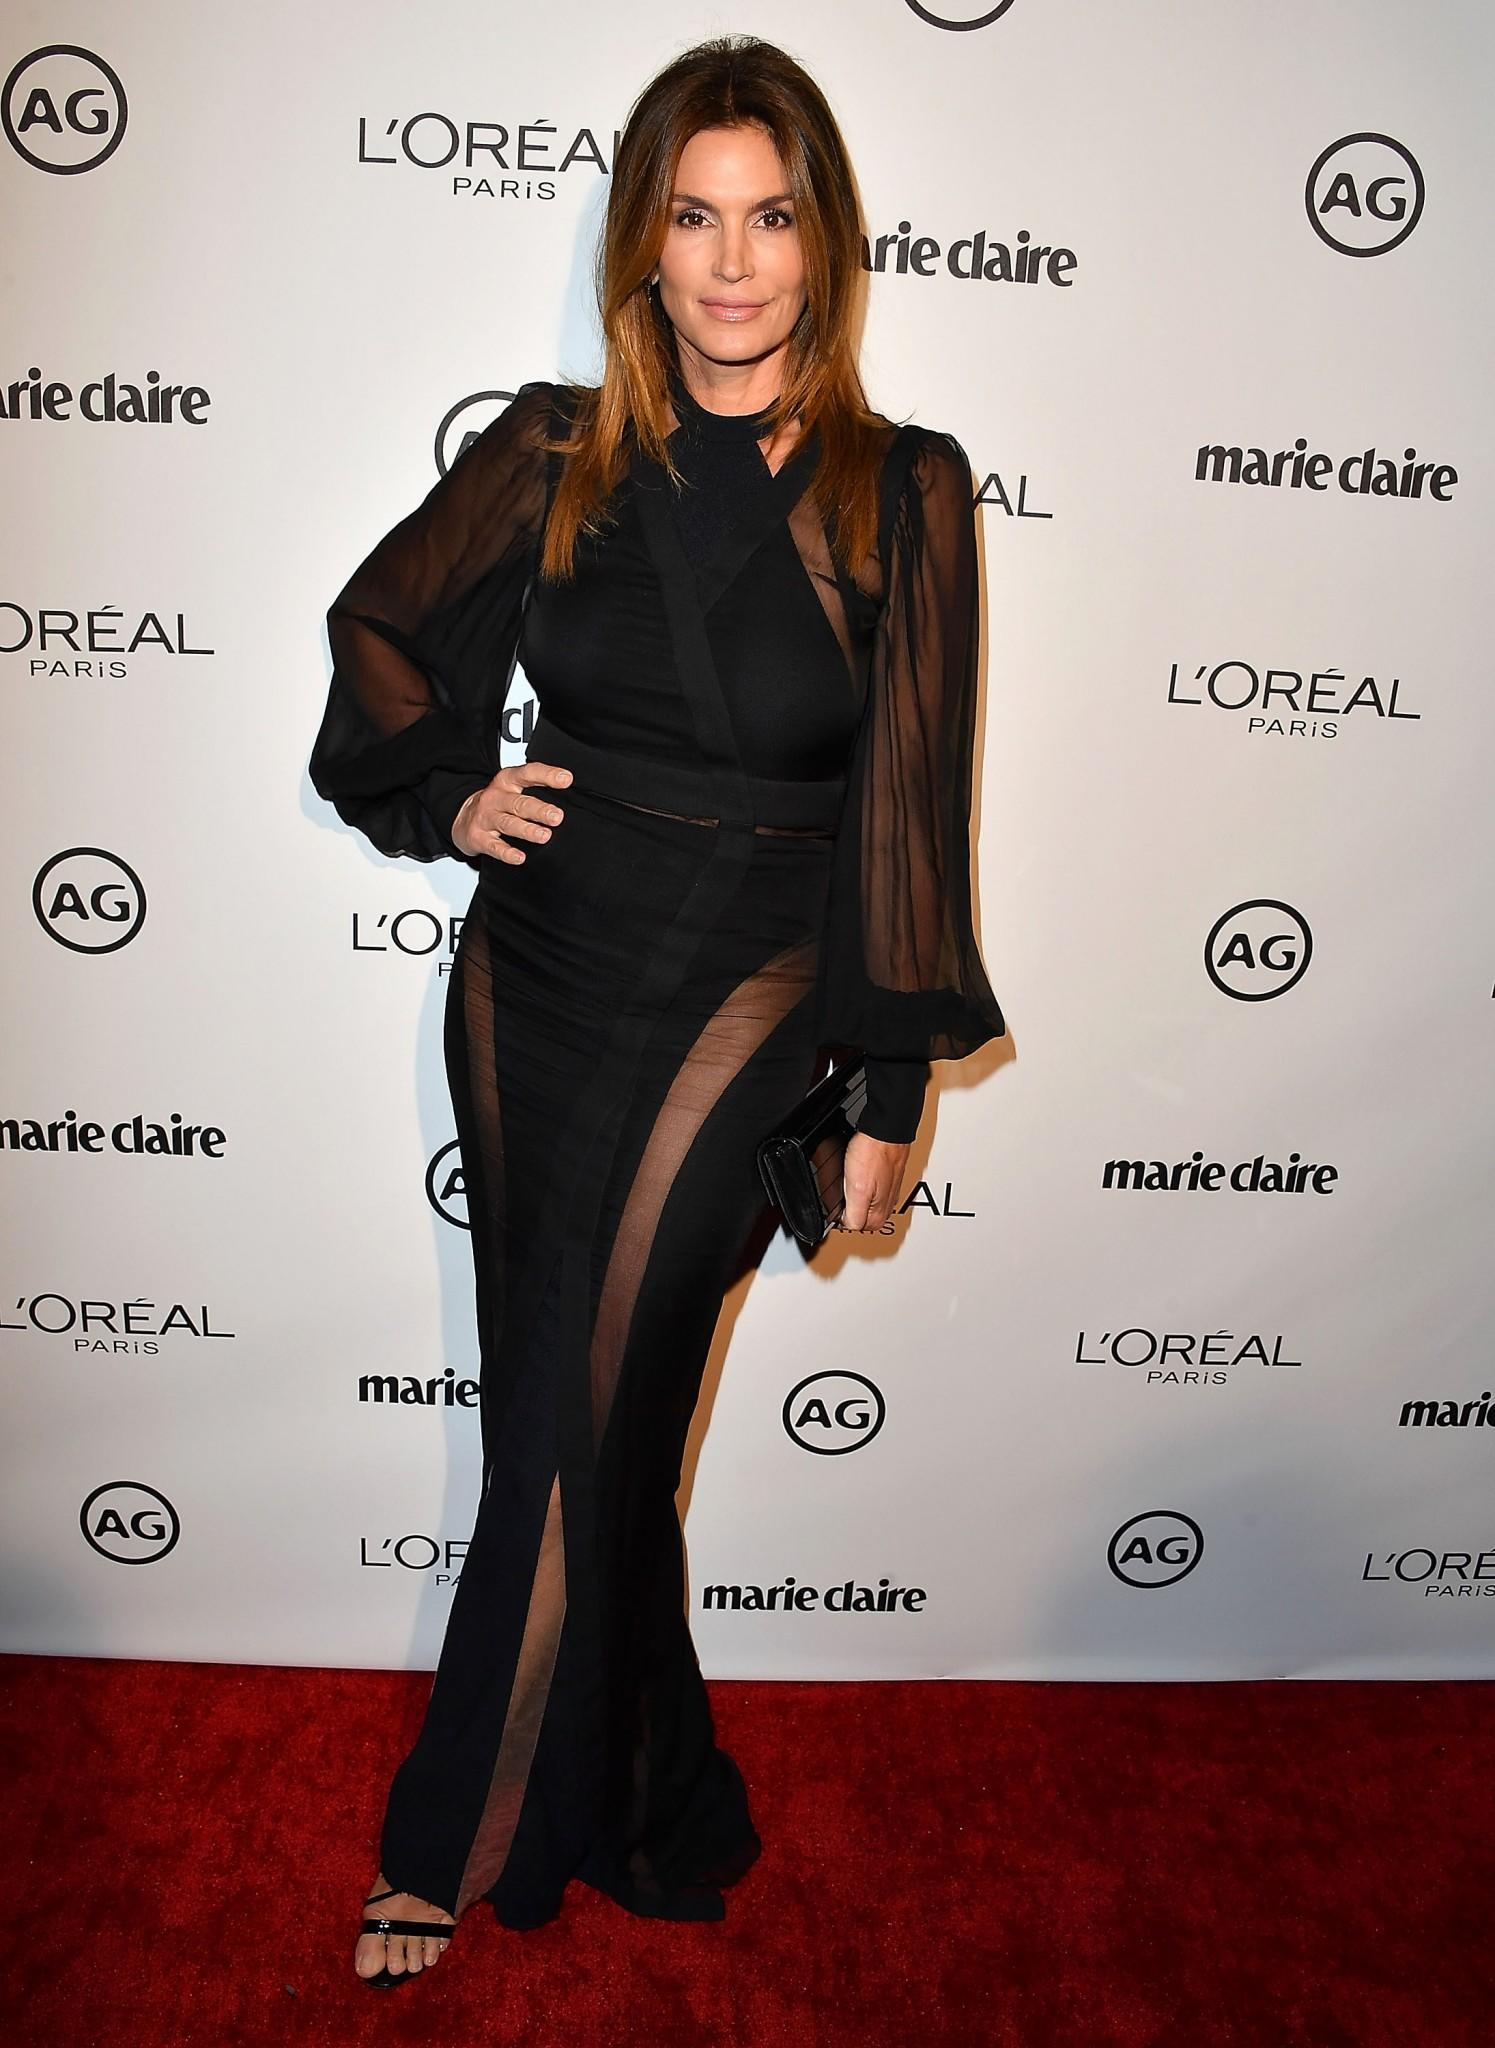 The supermodel wore Balmain to Marie Claire's Image Makers Awards. (Photo: Getty Images)